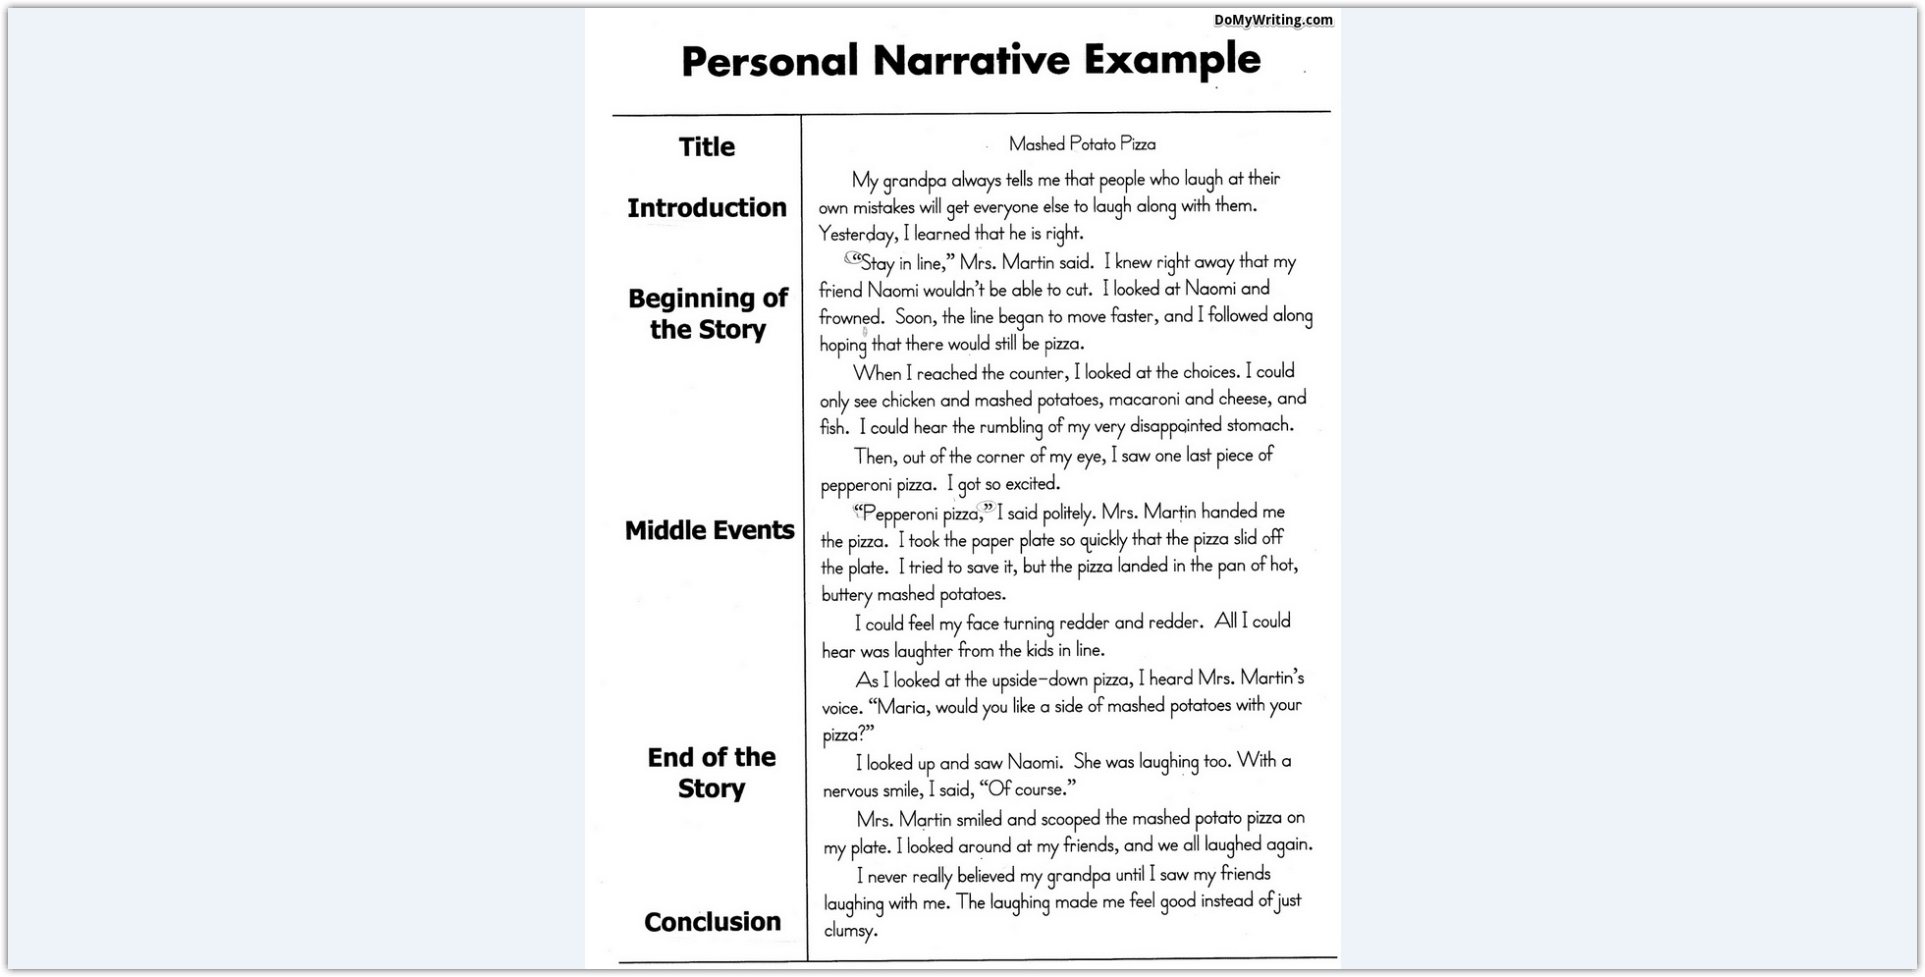 002 Narrative Essay Exceptional Sample Spm Structure Pdf Format Full